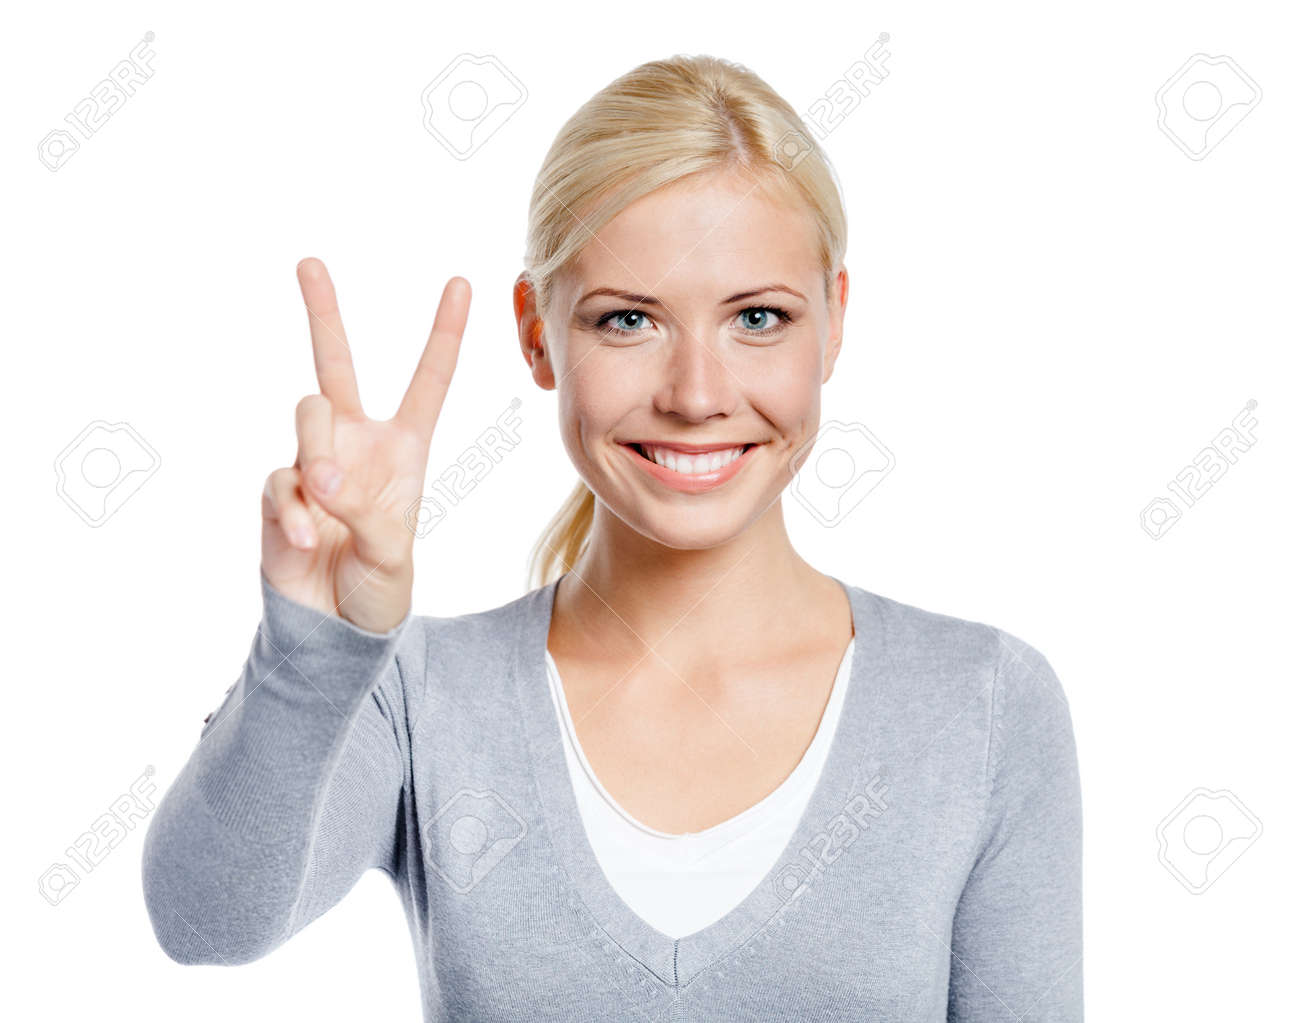 Female peace gesturing with hand, isolated on white Stock Photo - 18915867